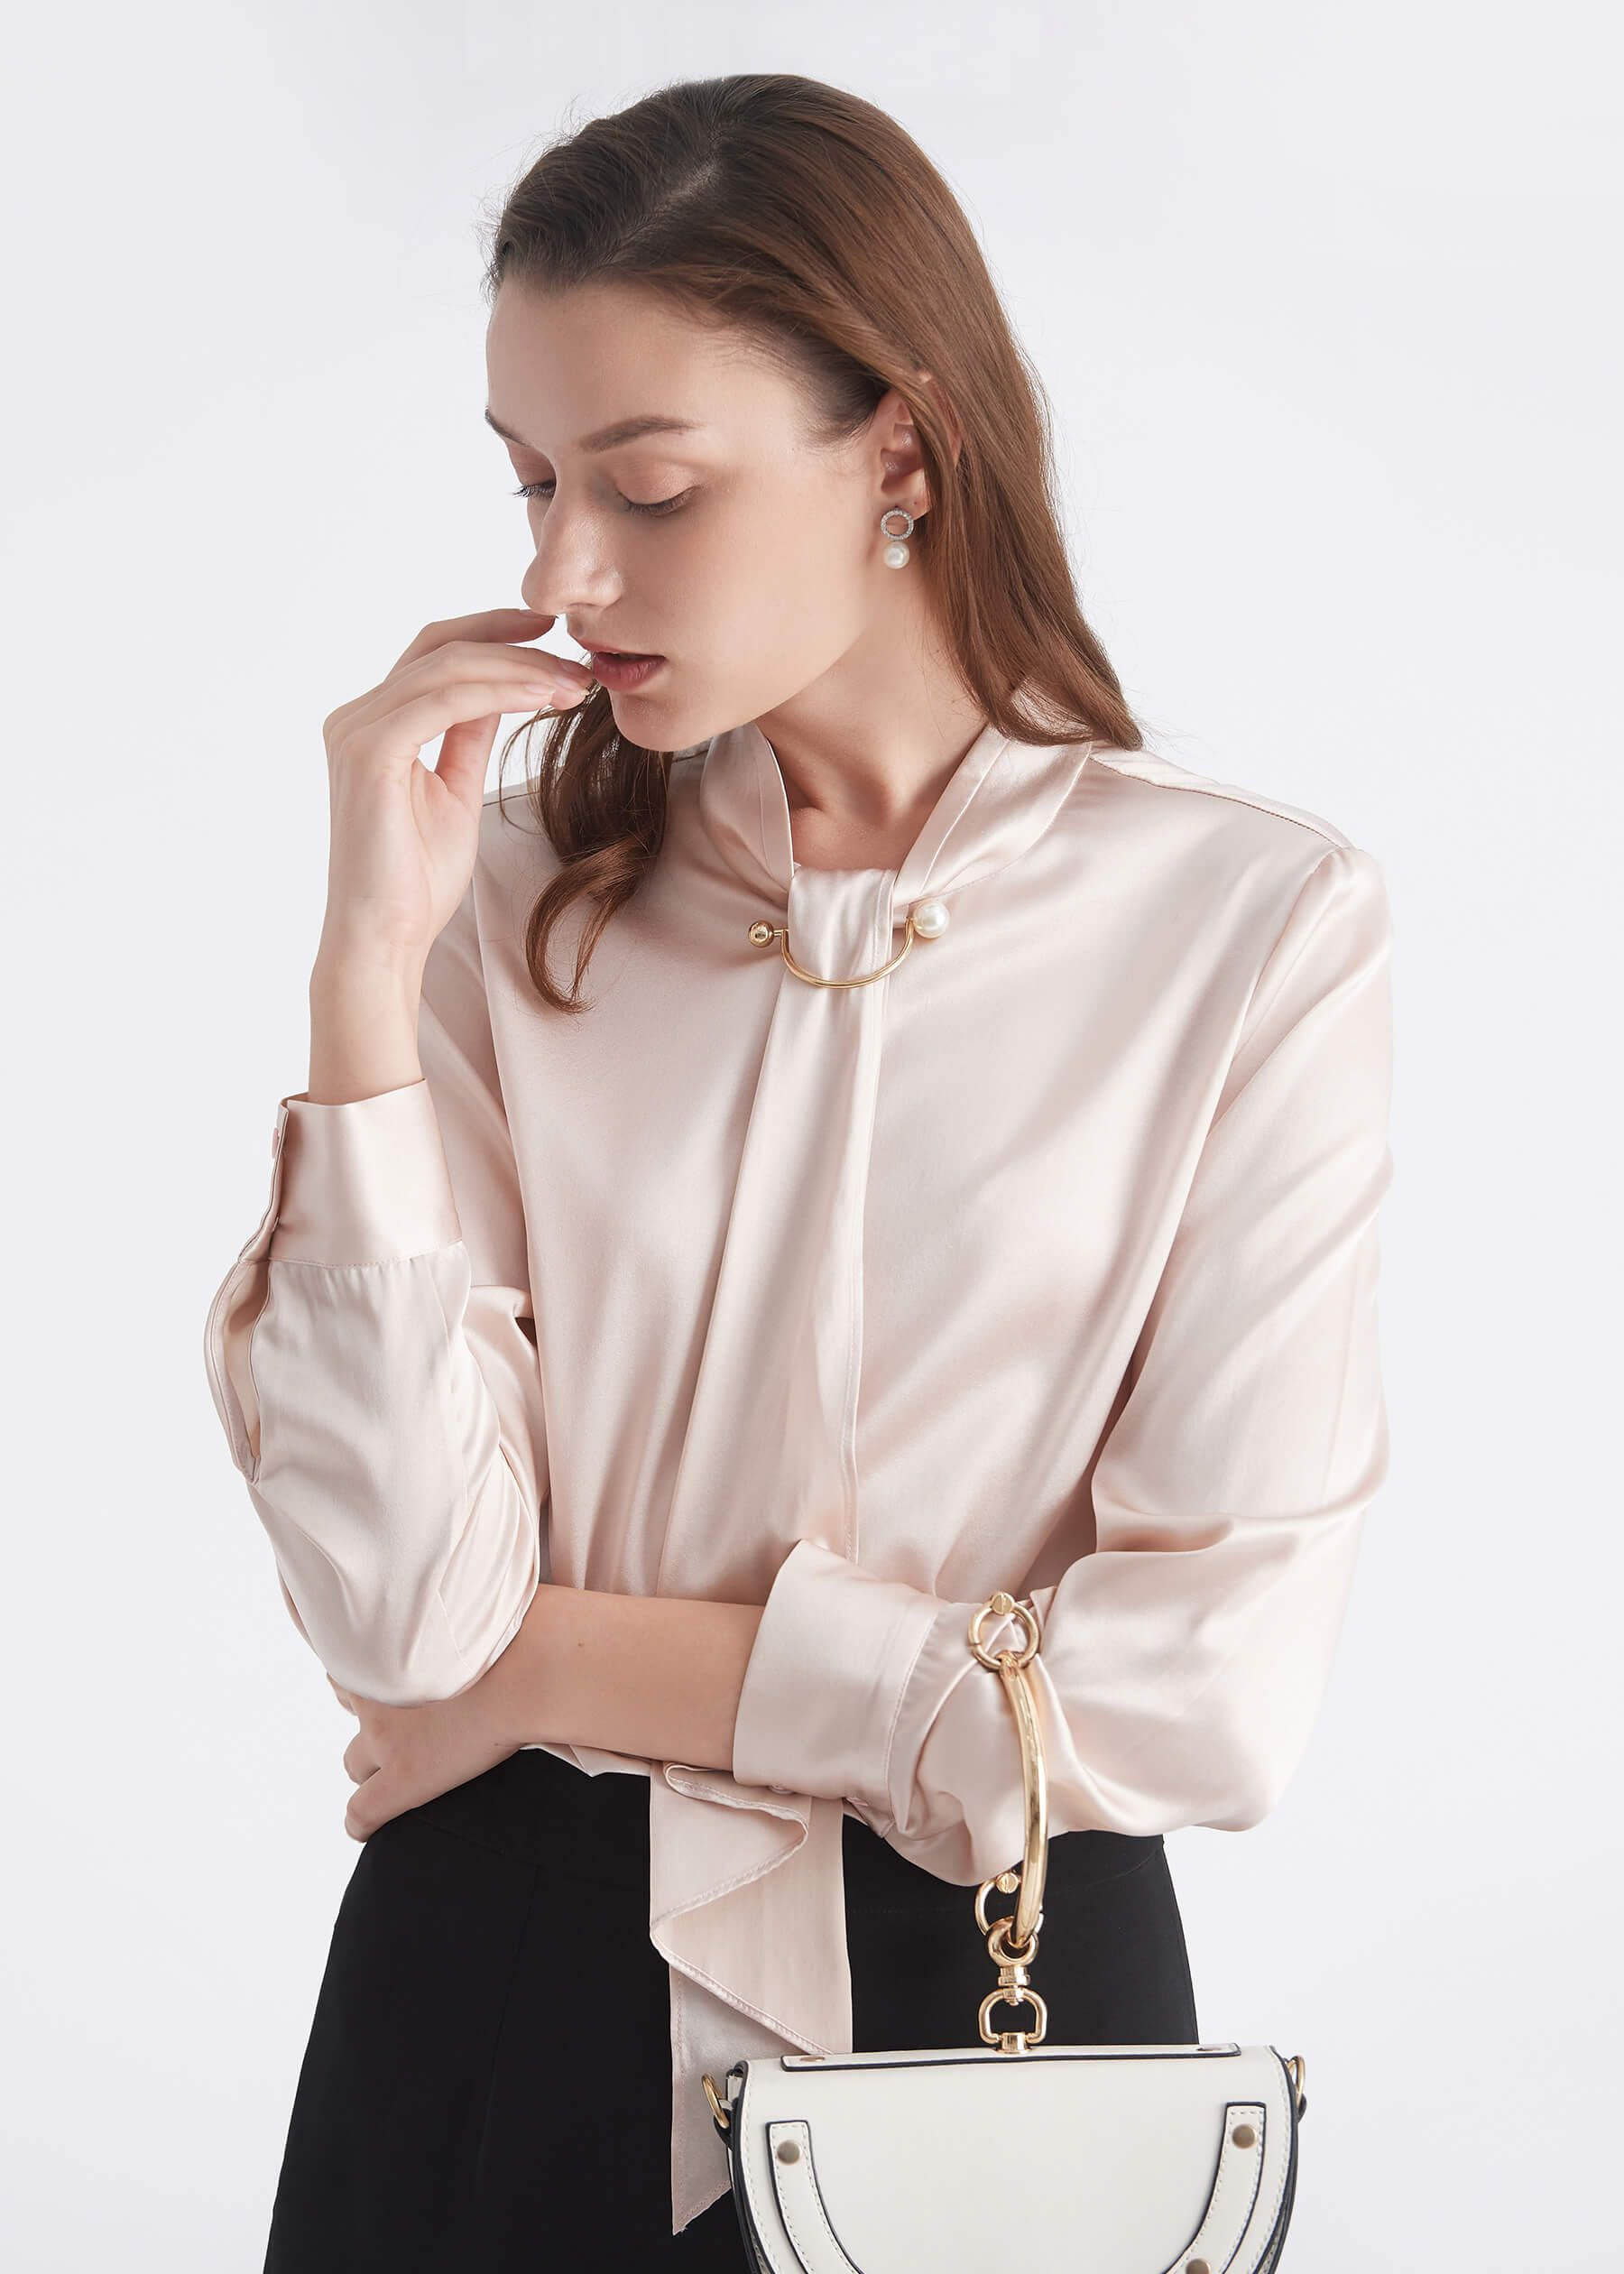 fb4e354fffd70 Lilysilk silk top has a modern spirit that moves easily from day to  evening. The high-neck featured collar